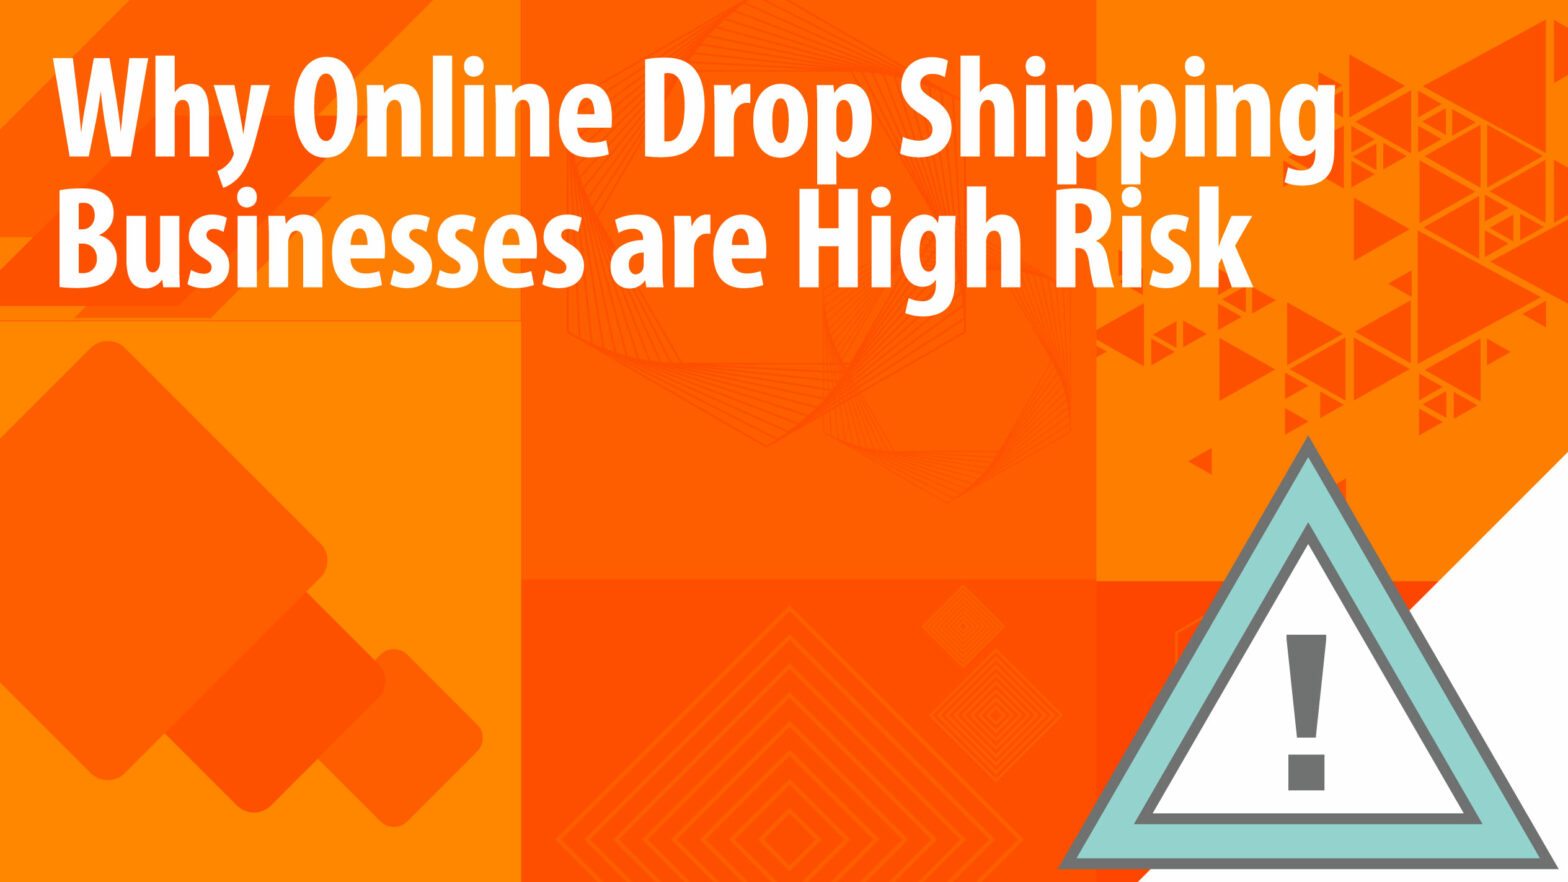 Drop Shipping is High Risk Article Header